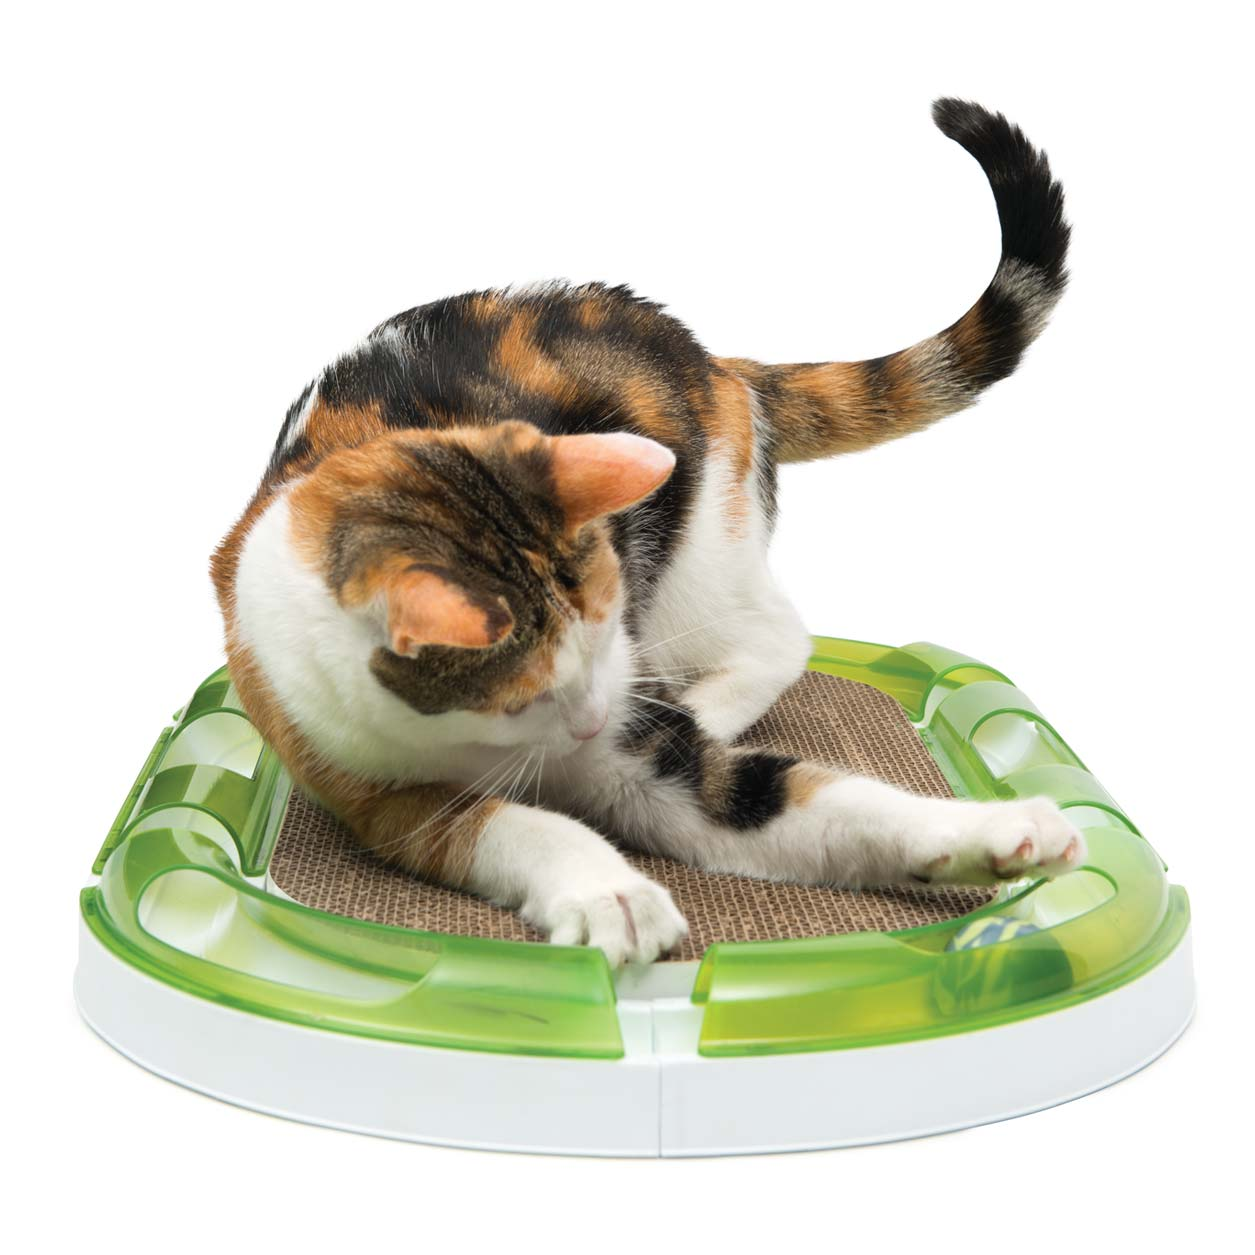 Pixi playing with the senses 2.0 circtuit on the oval scratcher